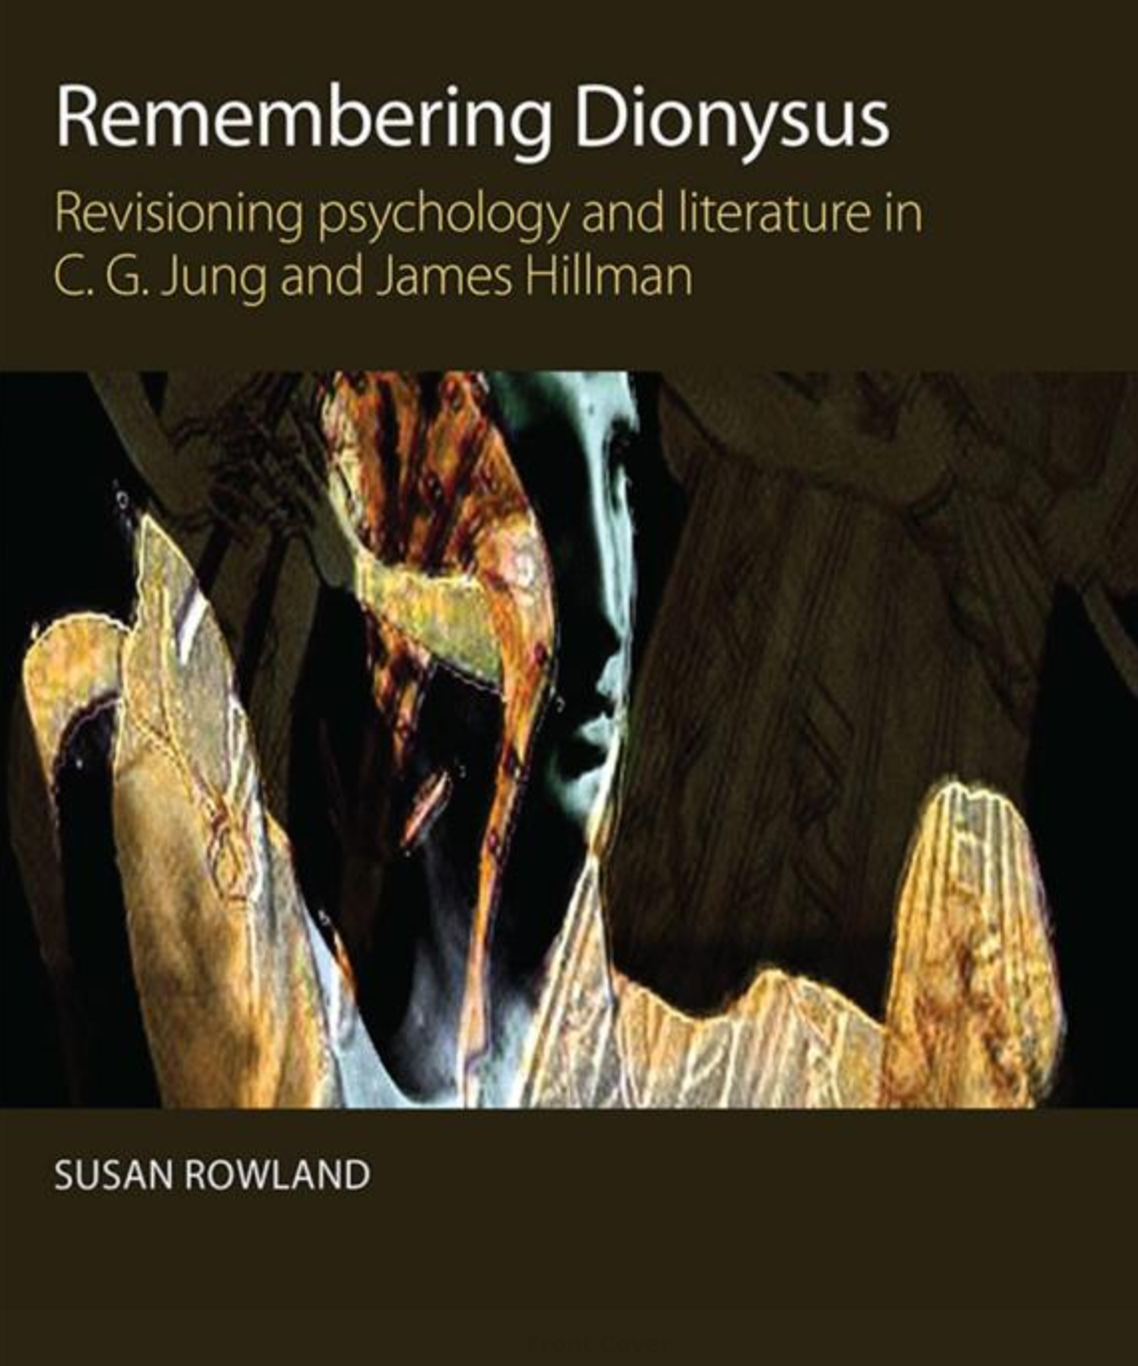 book-rowland-remembering-dionysus.png